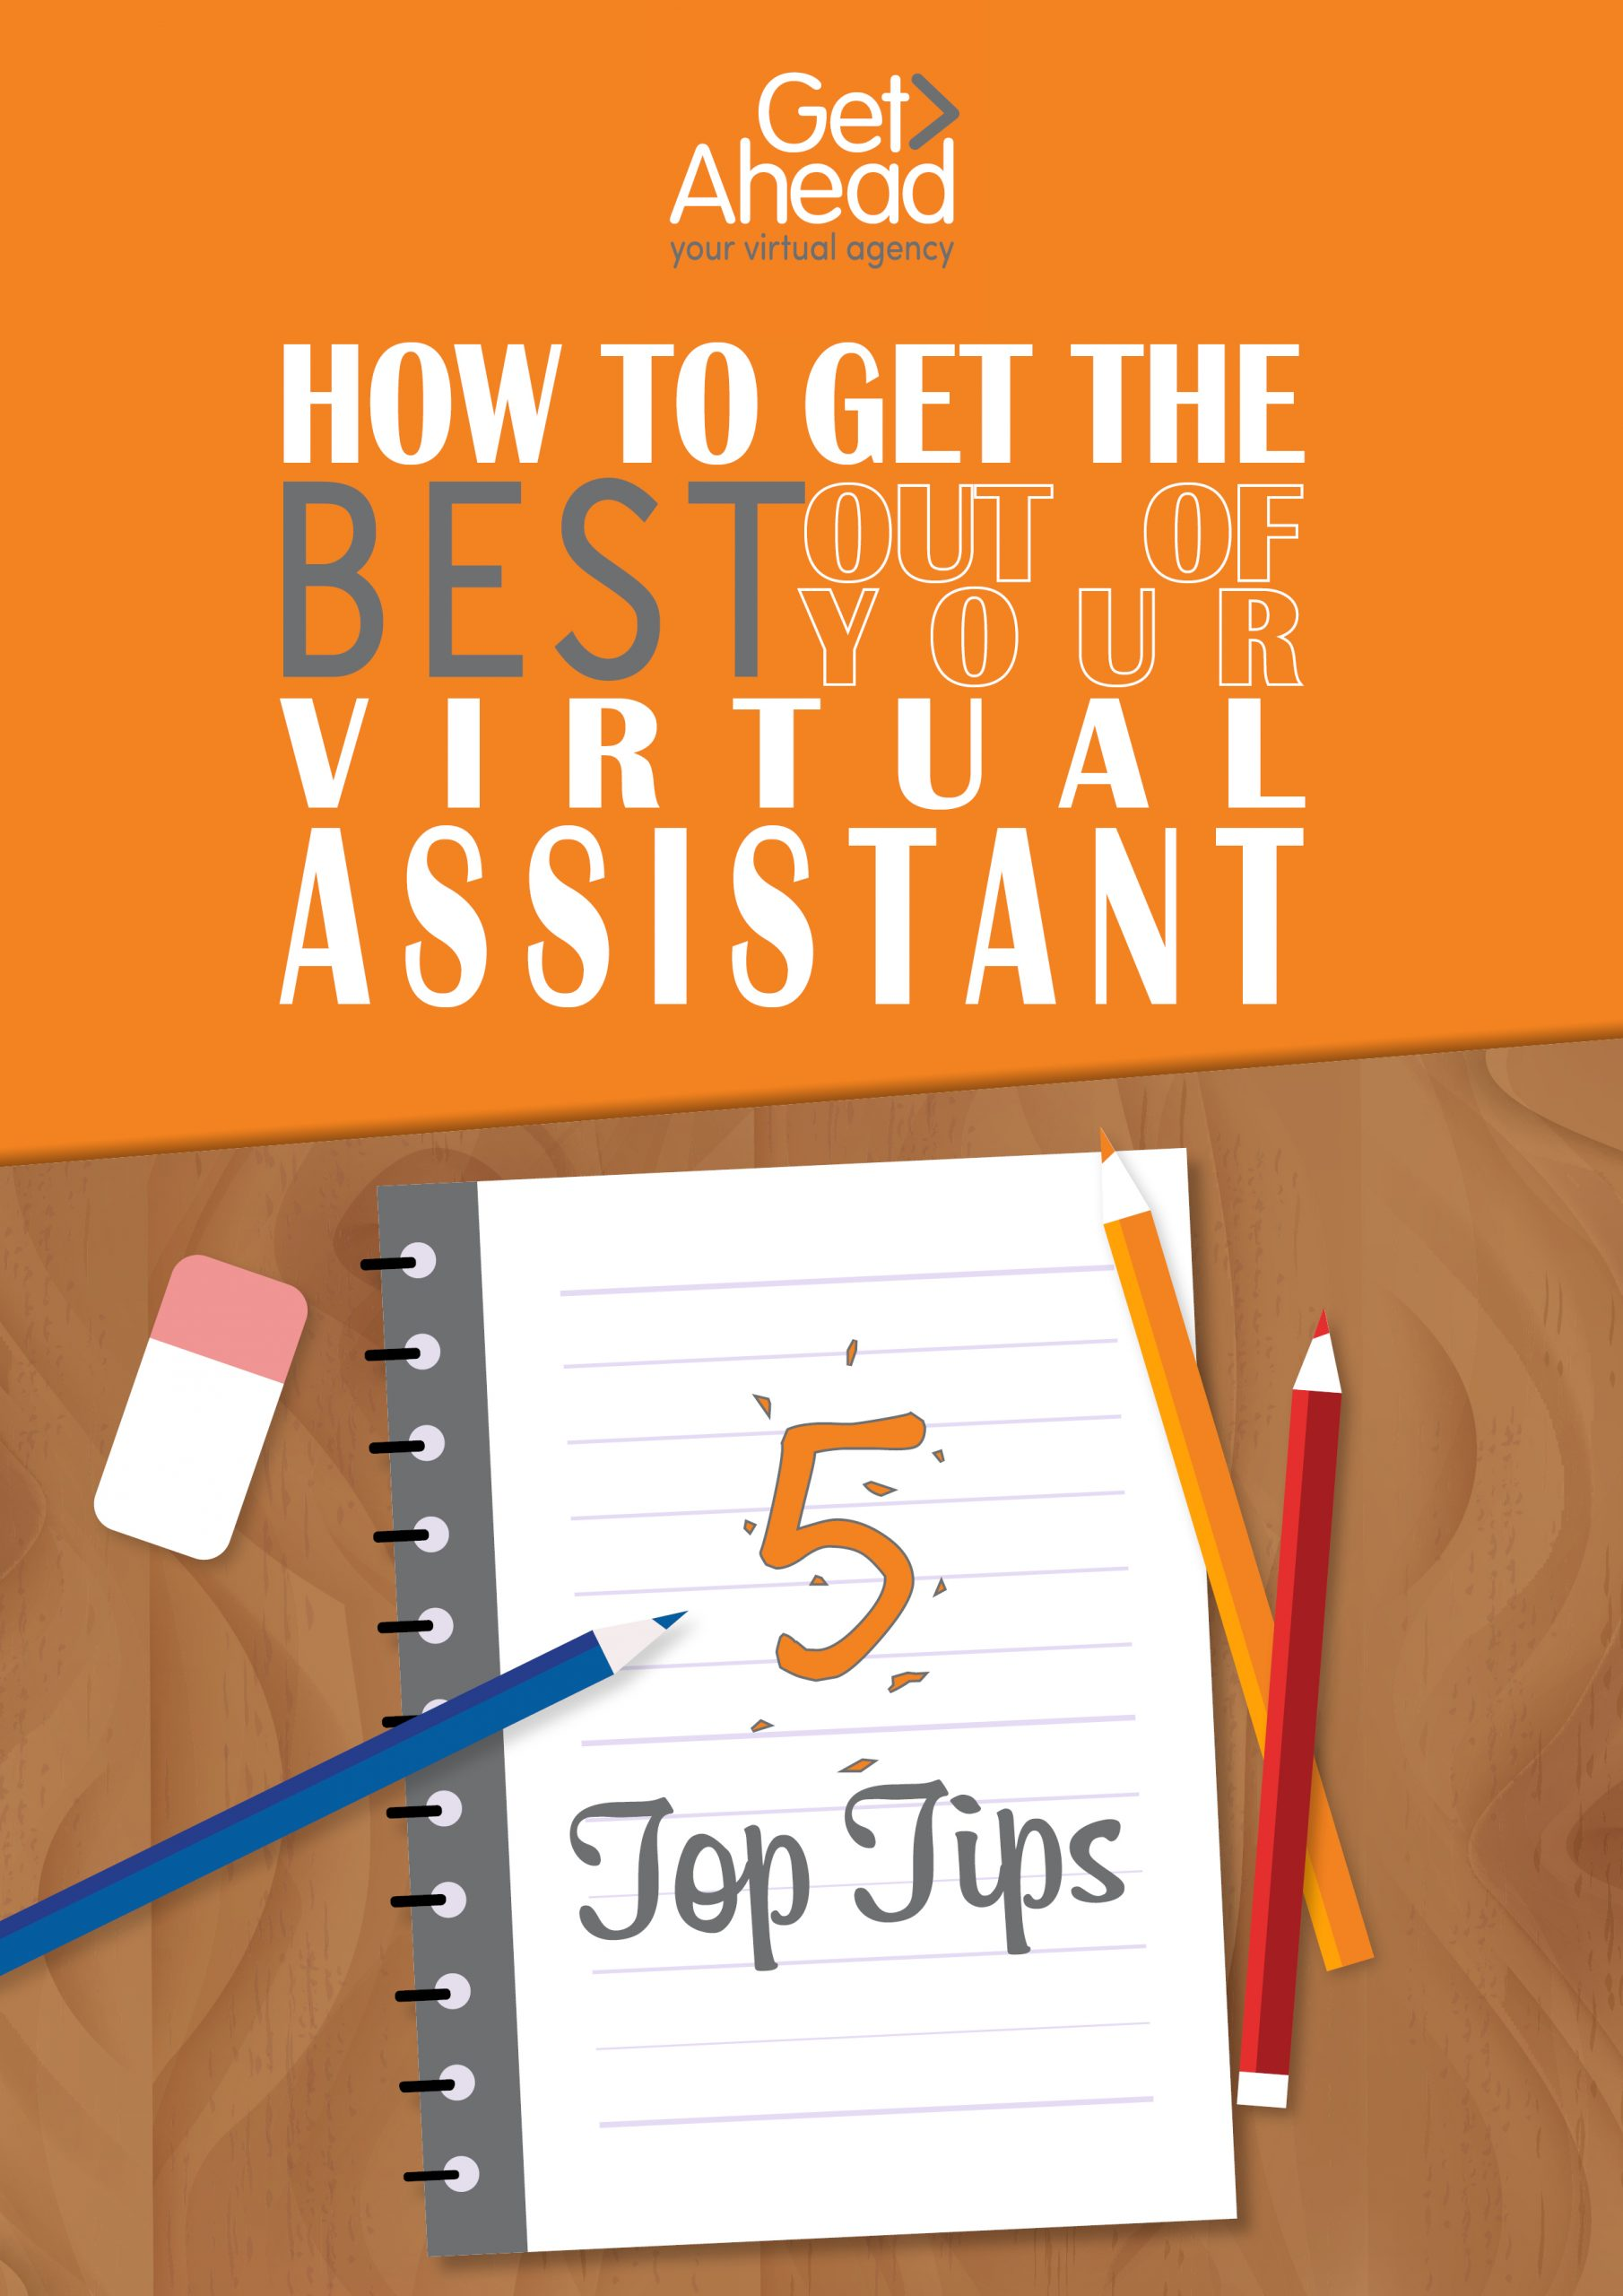 How to get the best out of your Virtual Assistant booklet